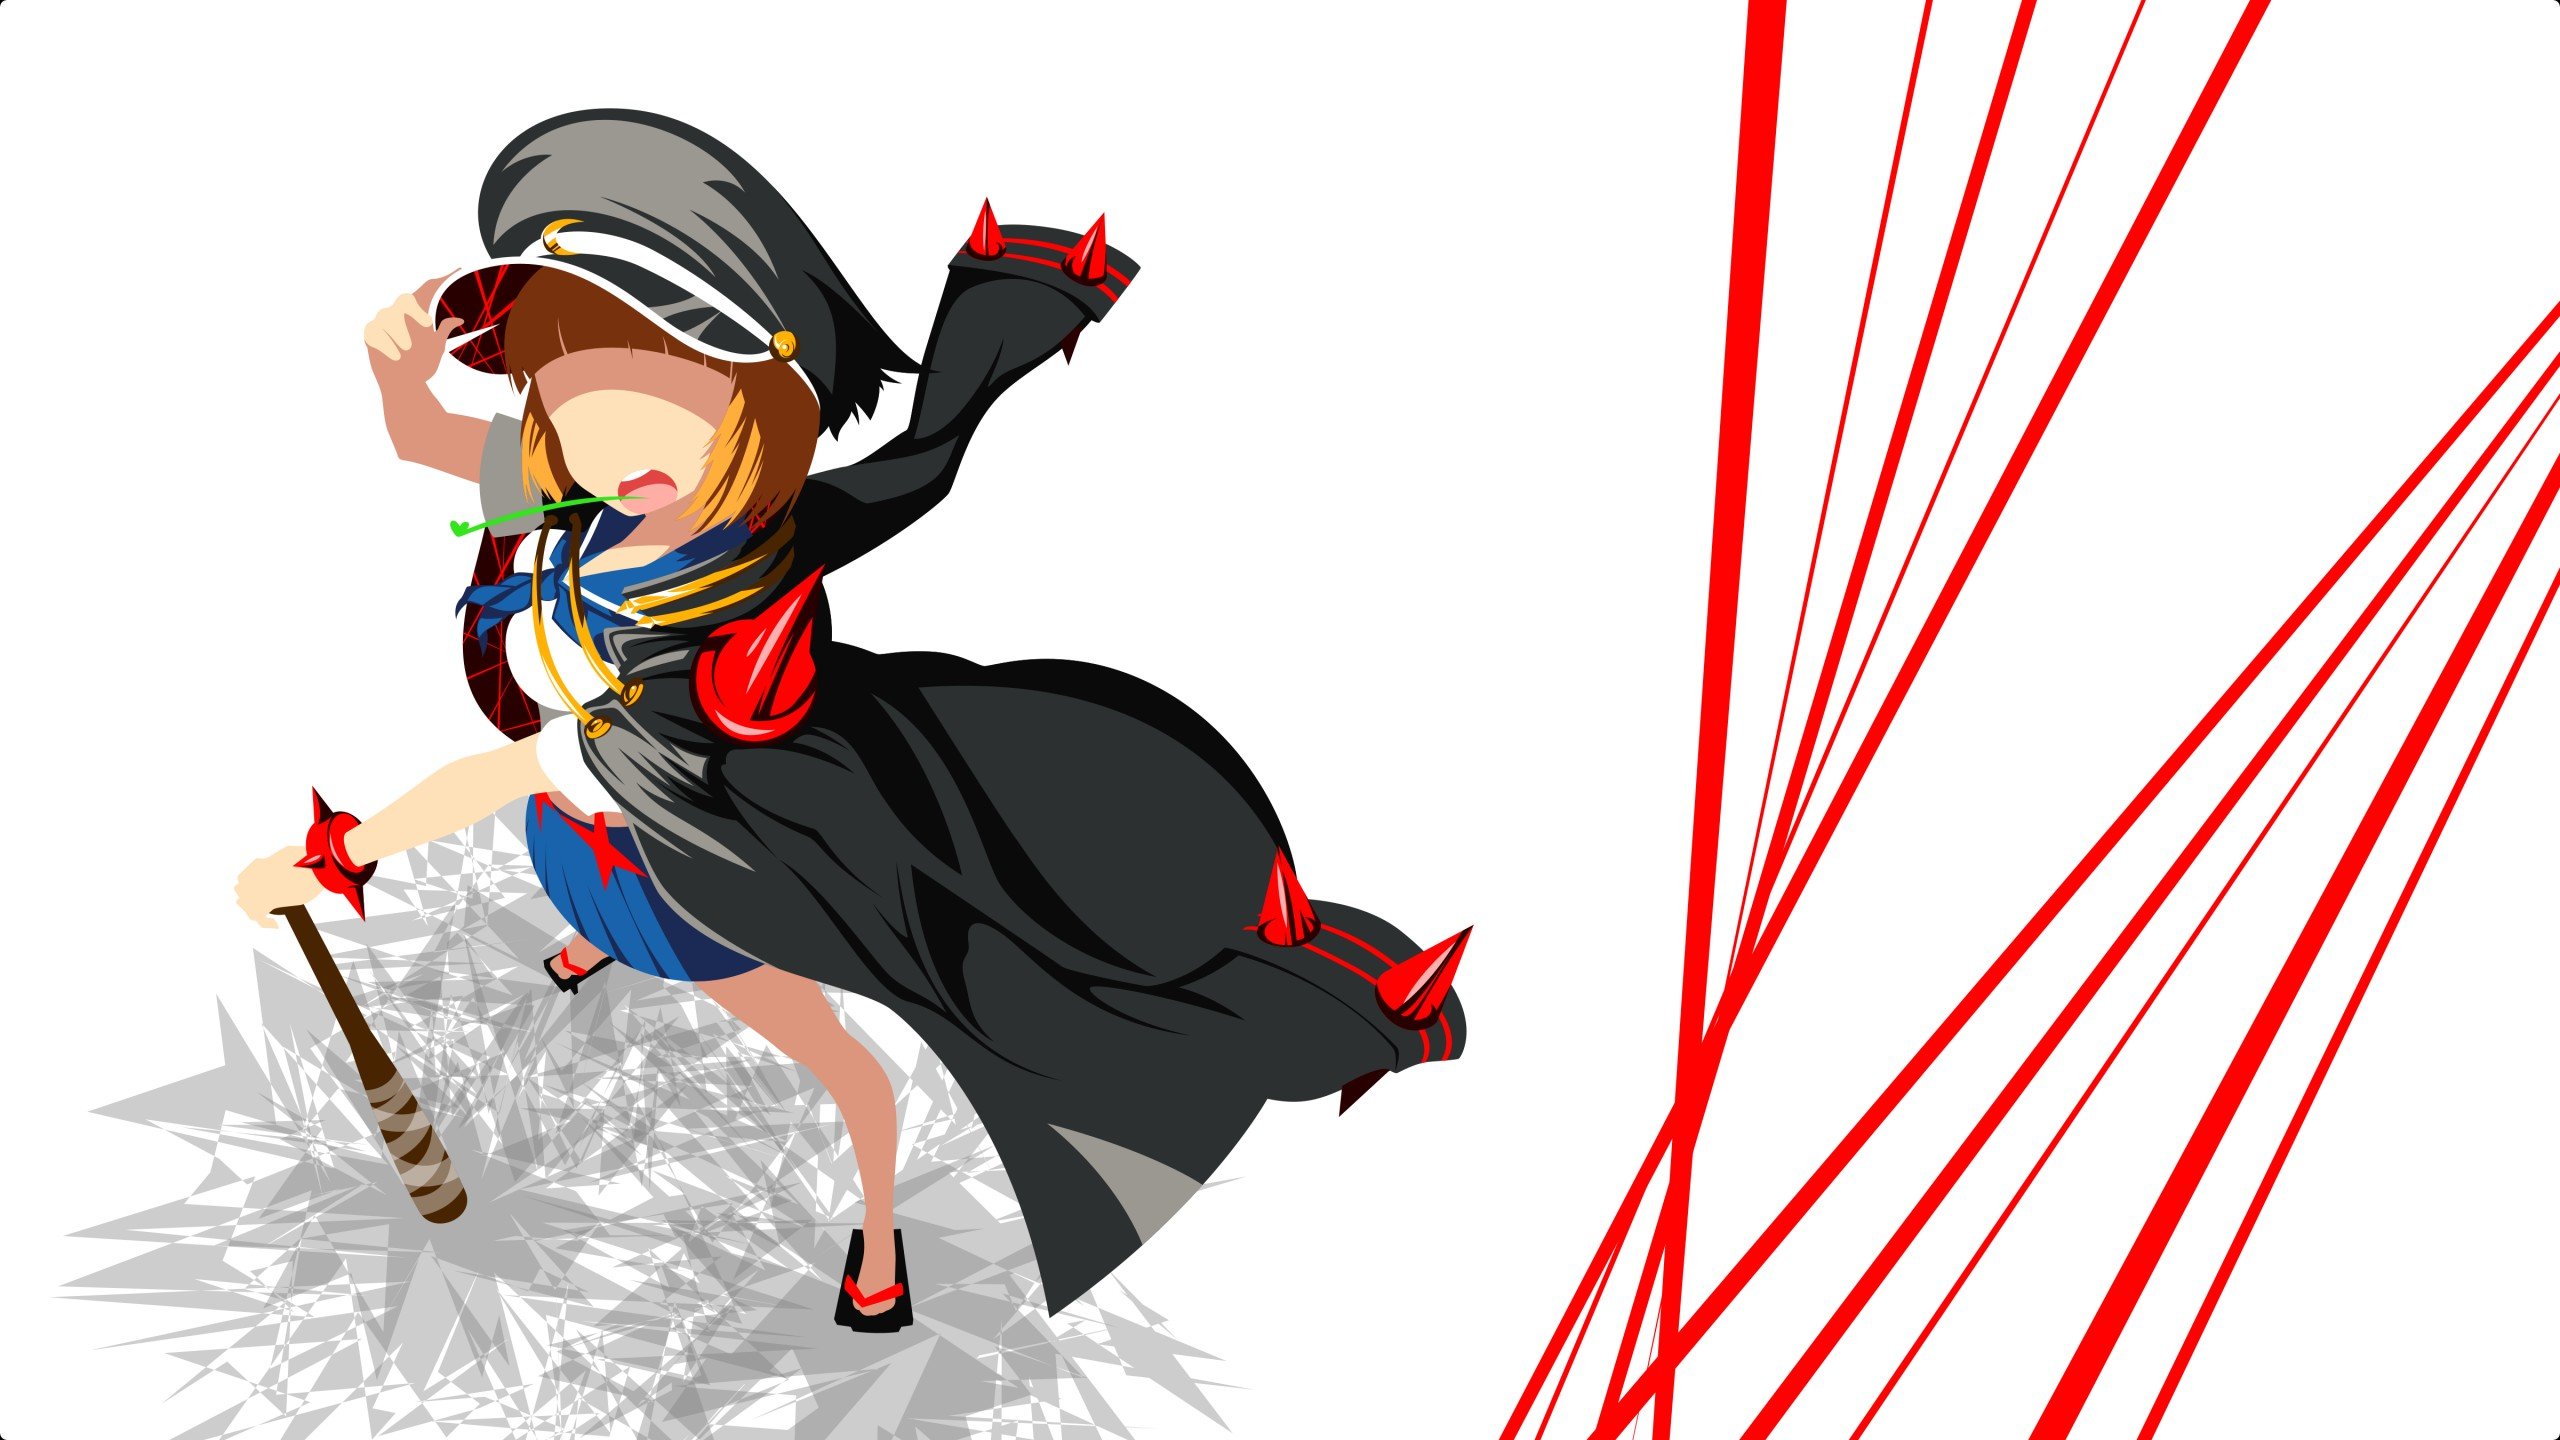 Mako Mankanshoku Kill La Kill Wallpaper By Carionto On Deviantart